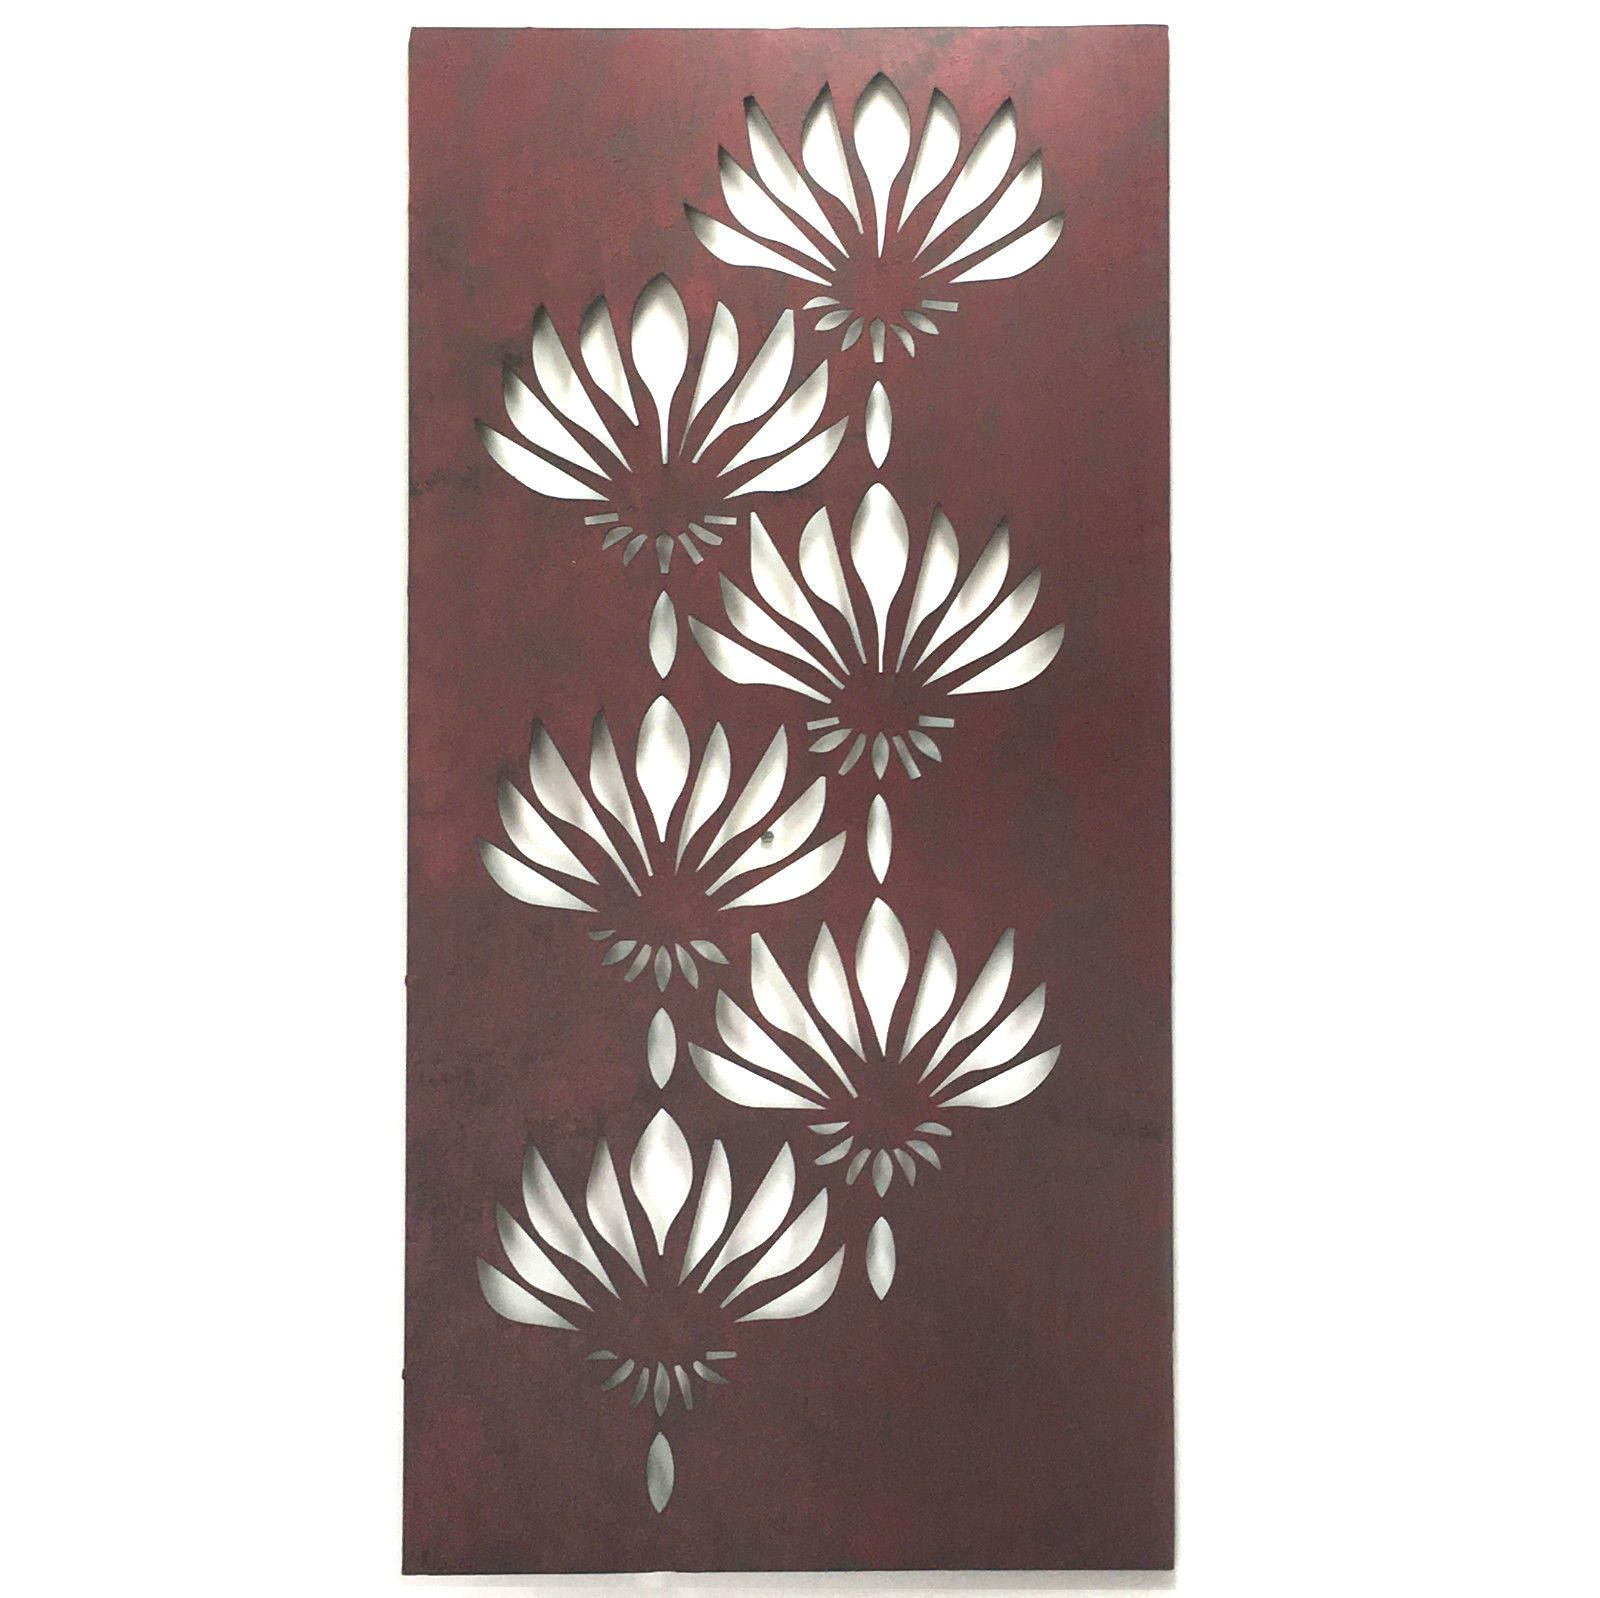 366bf5b7d8 A gorgeous laser cut lotus flower wall art. Made of metal. Dimensions  (width x depth x height): 38 x 1 x 80cm.